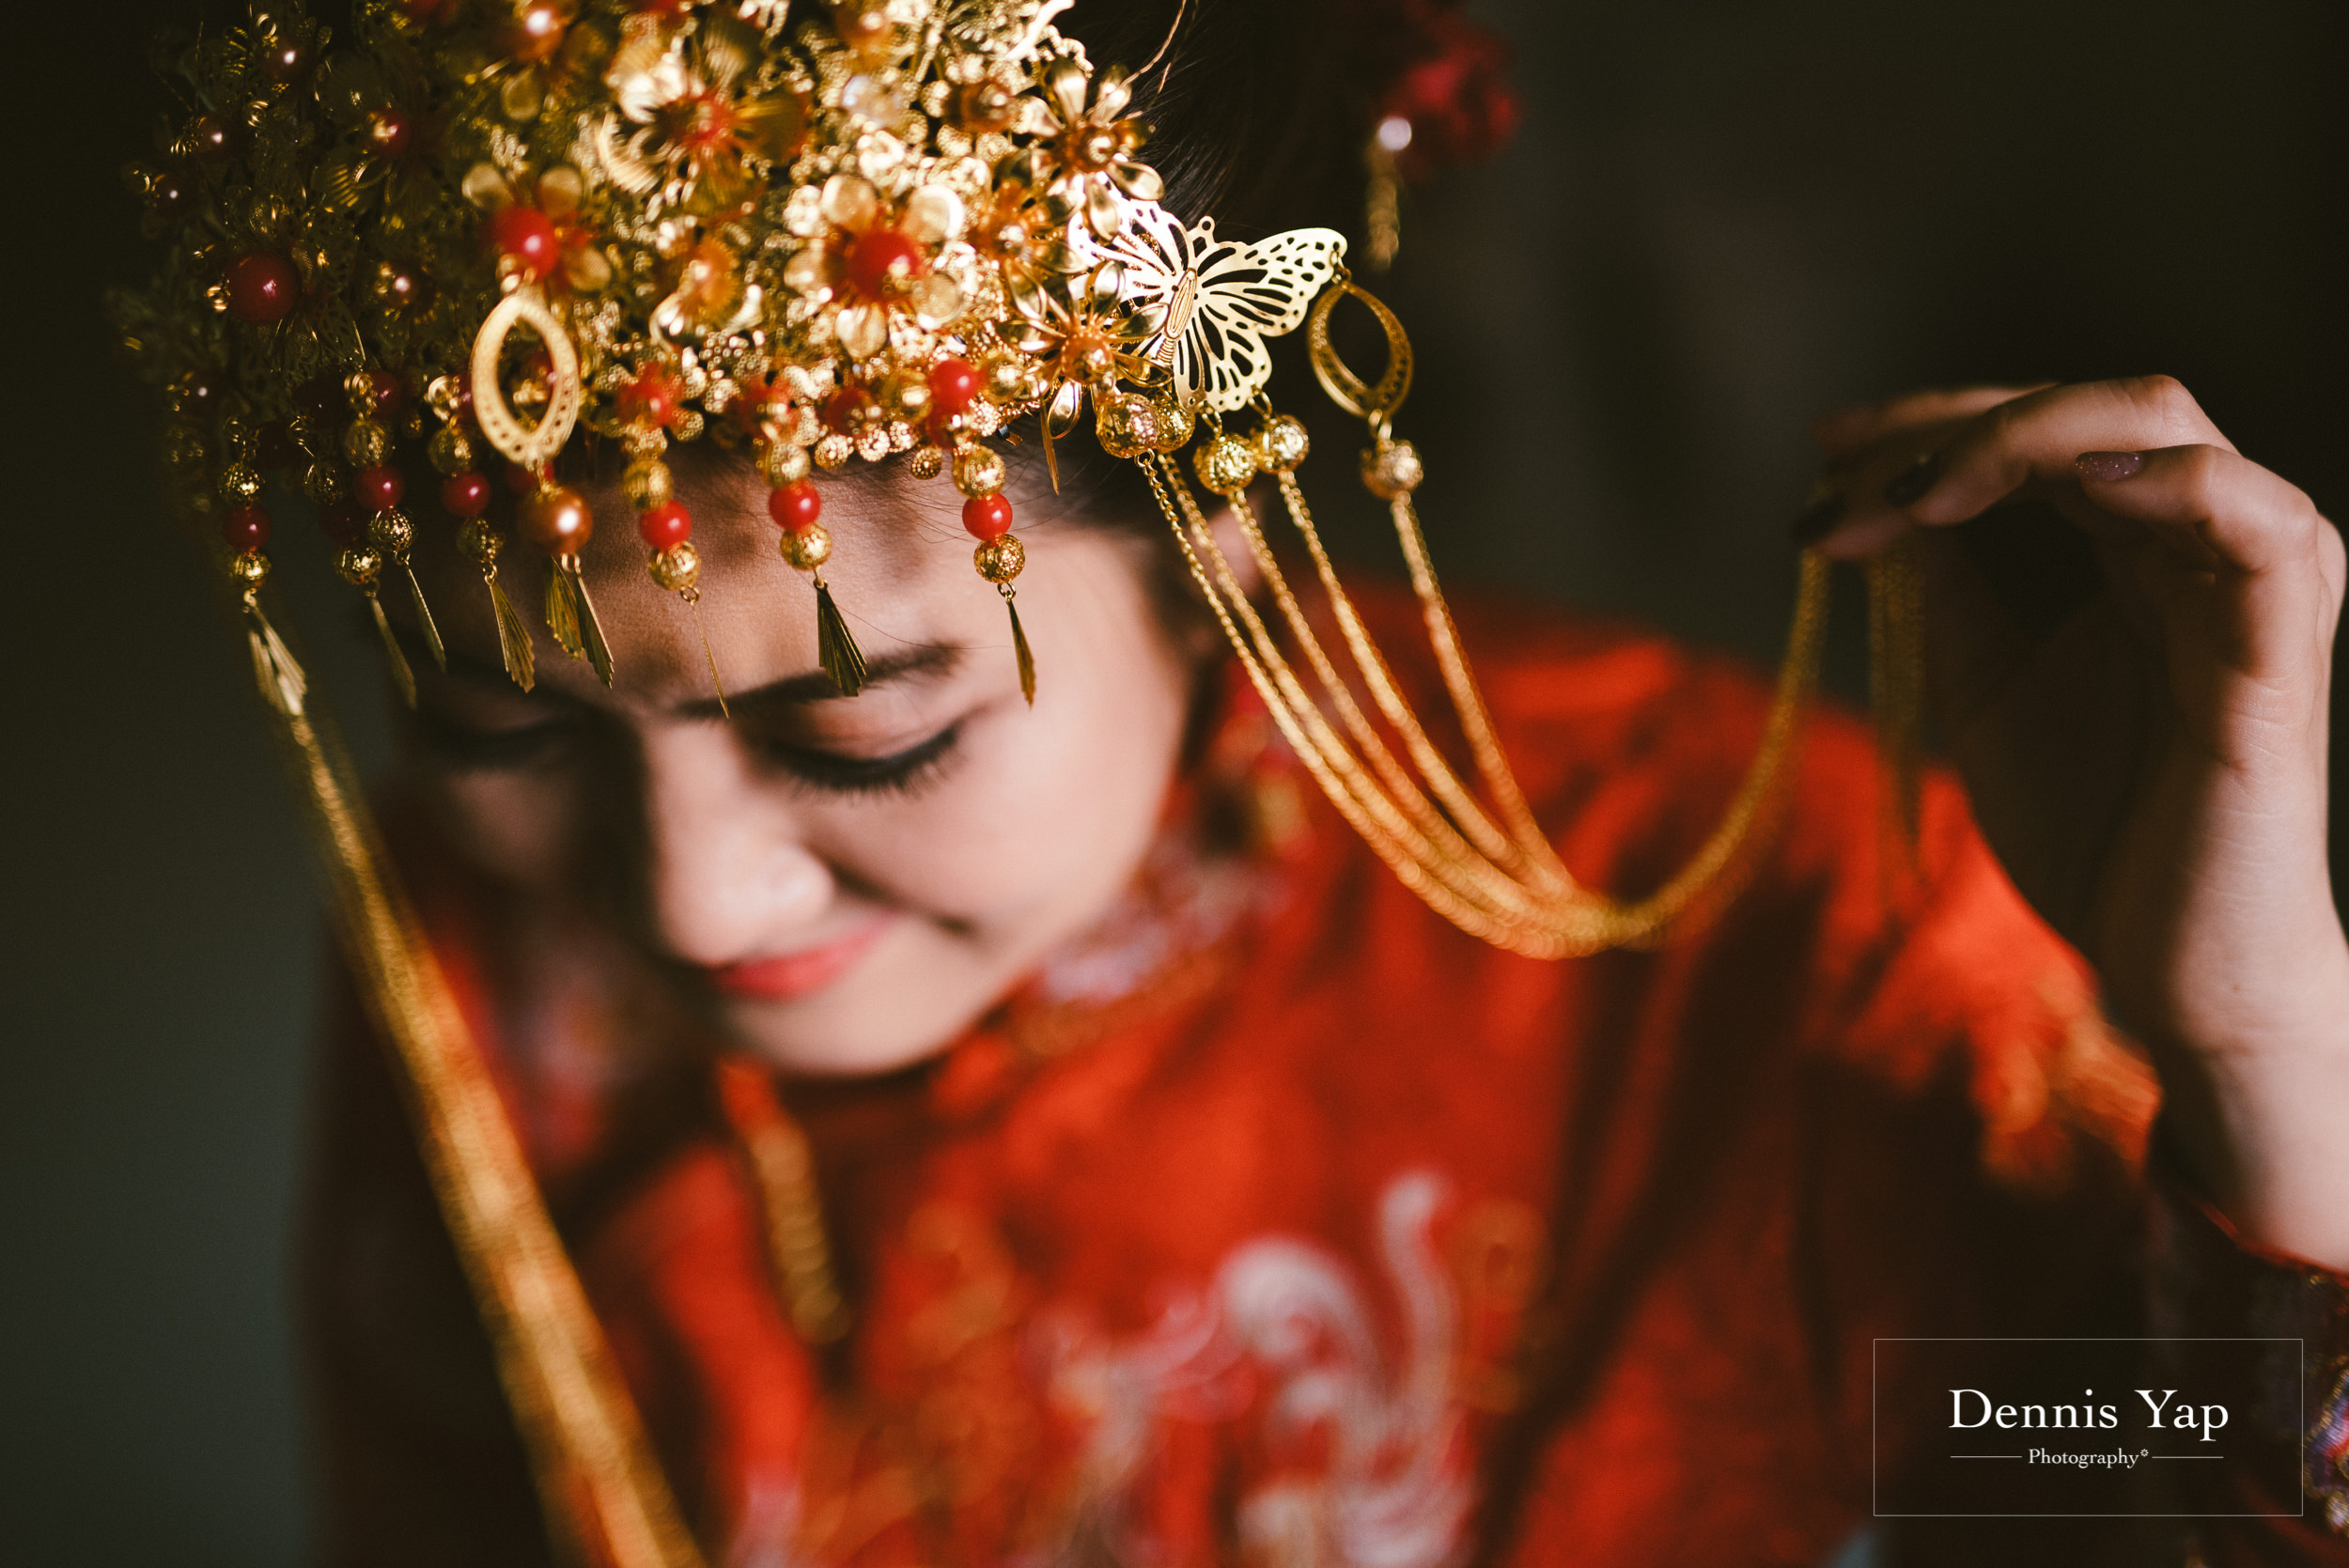 jimmy mellissa wedding day traditional chinese kua dennis yap photography-6.jpg